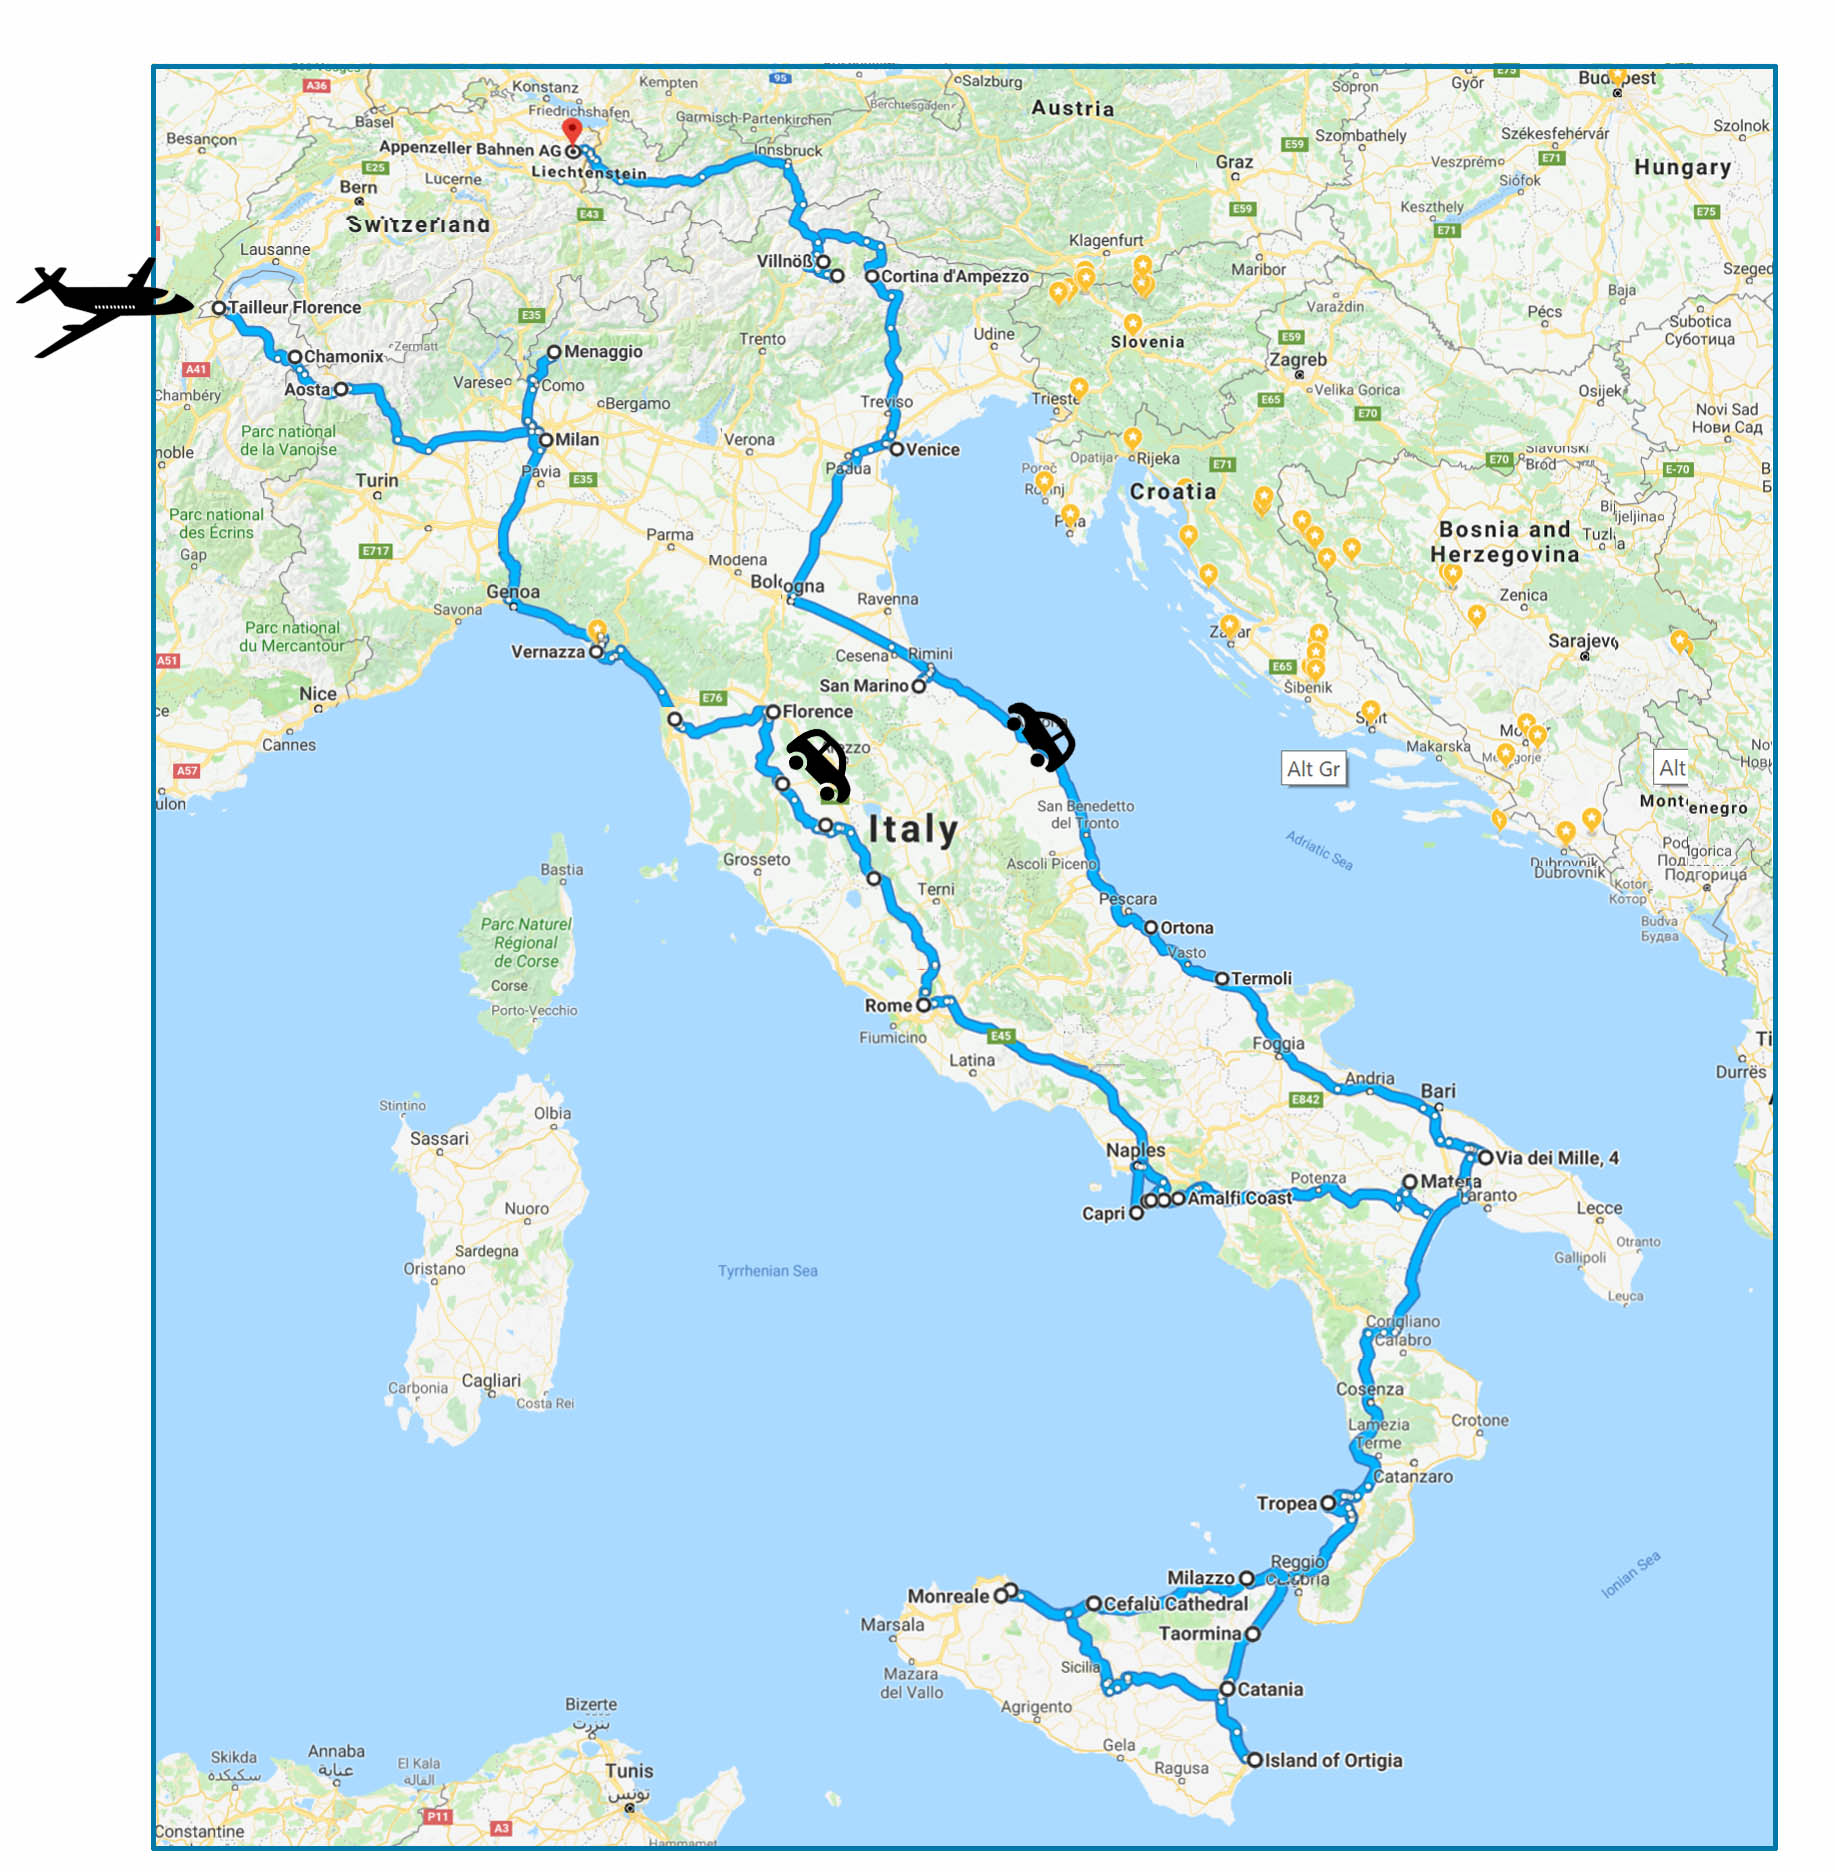 Our road trip in Italy